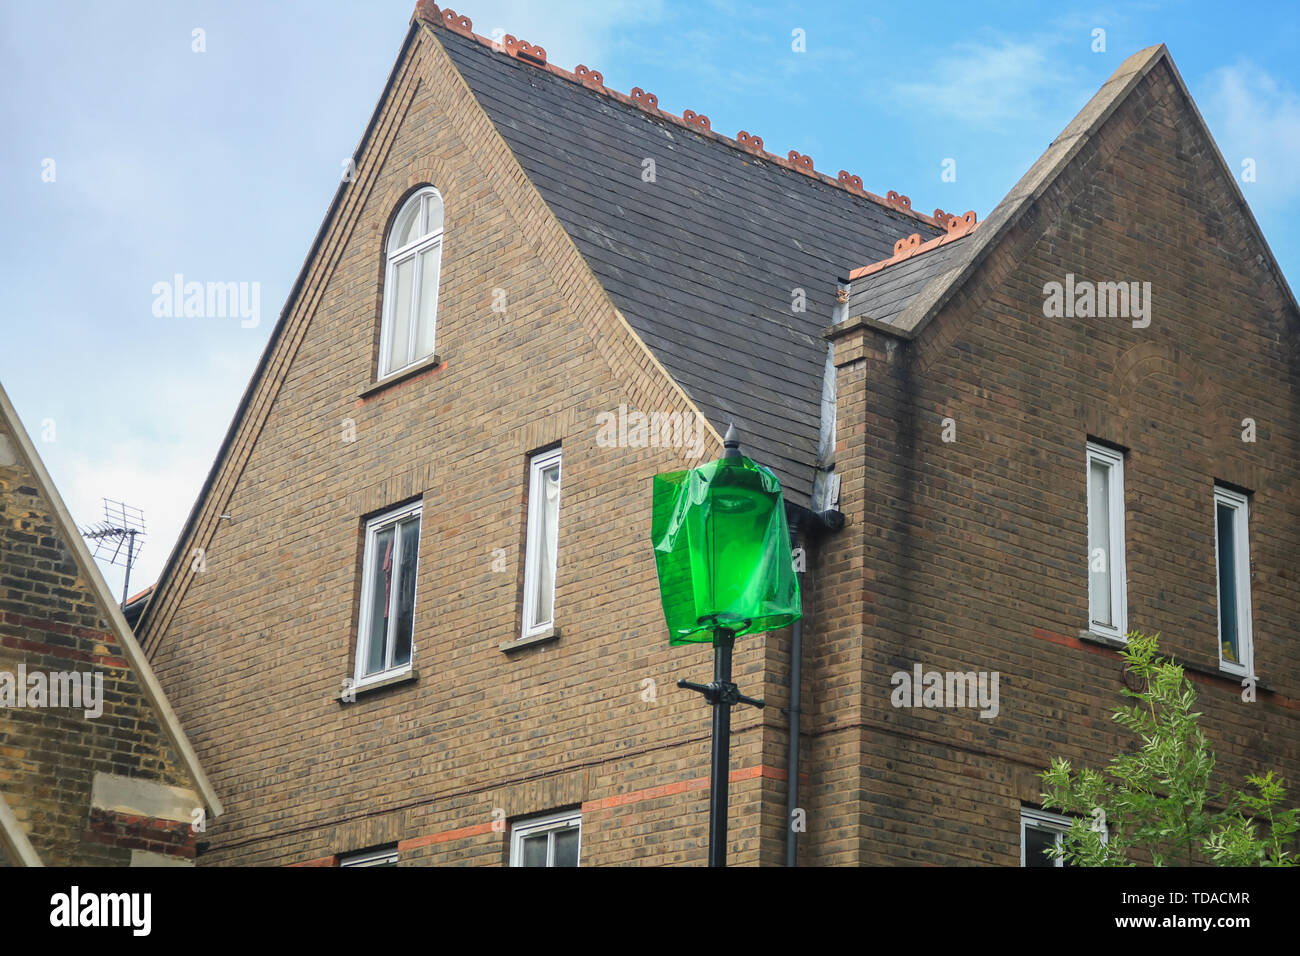 London, UK. 13th June, 2019. Street lamp covered in green to commemorate the second anniversary of the devastating inferno fire which in the residential tower block in West London on 14 June 2017 Credit: amer ghazzal/Alamy Live News - Stock Image